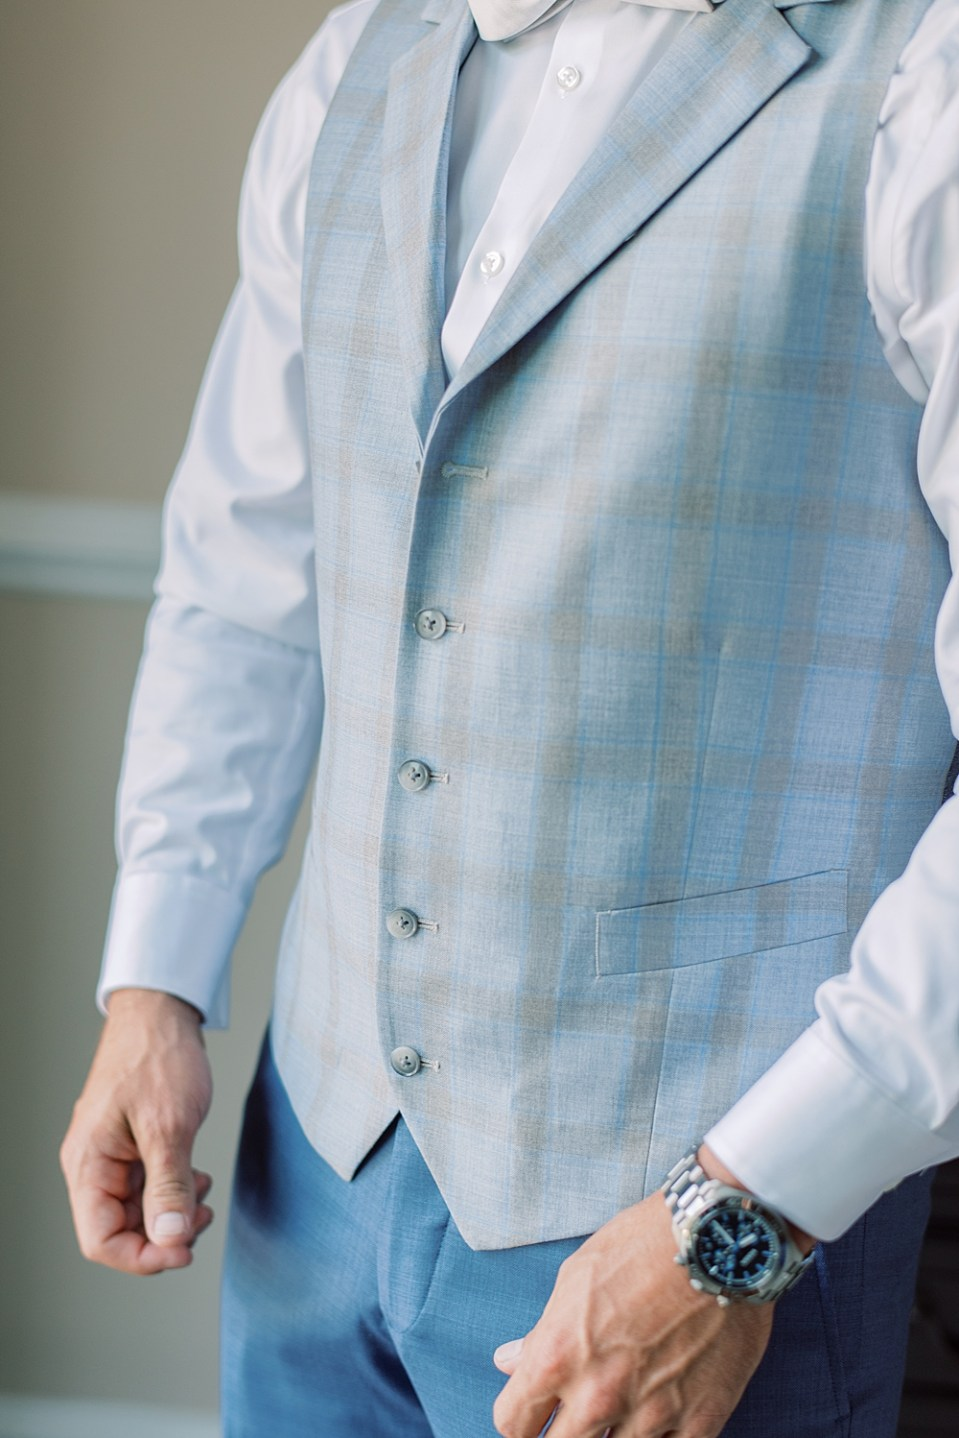 custom blue suit | ashford estate wedding | Sarah Canning Photography